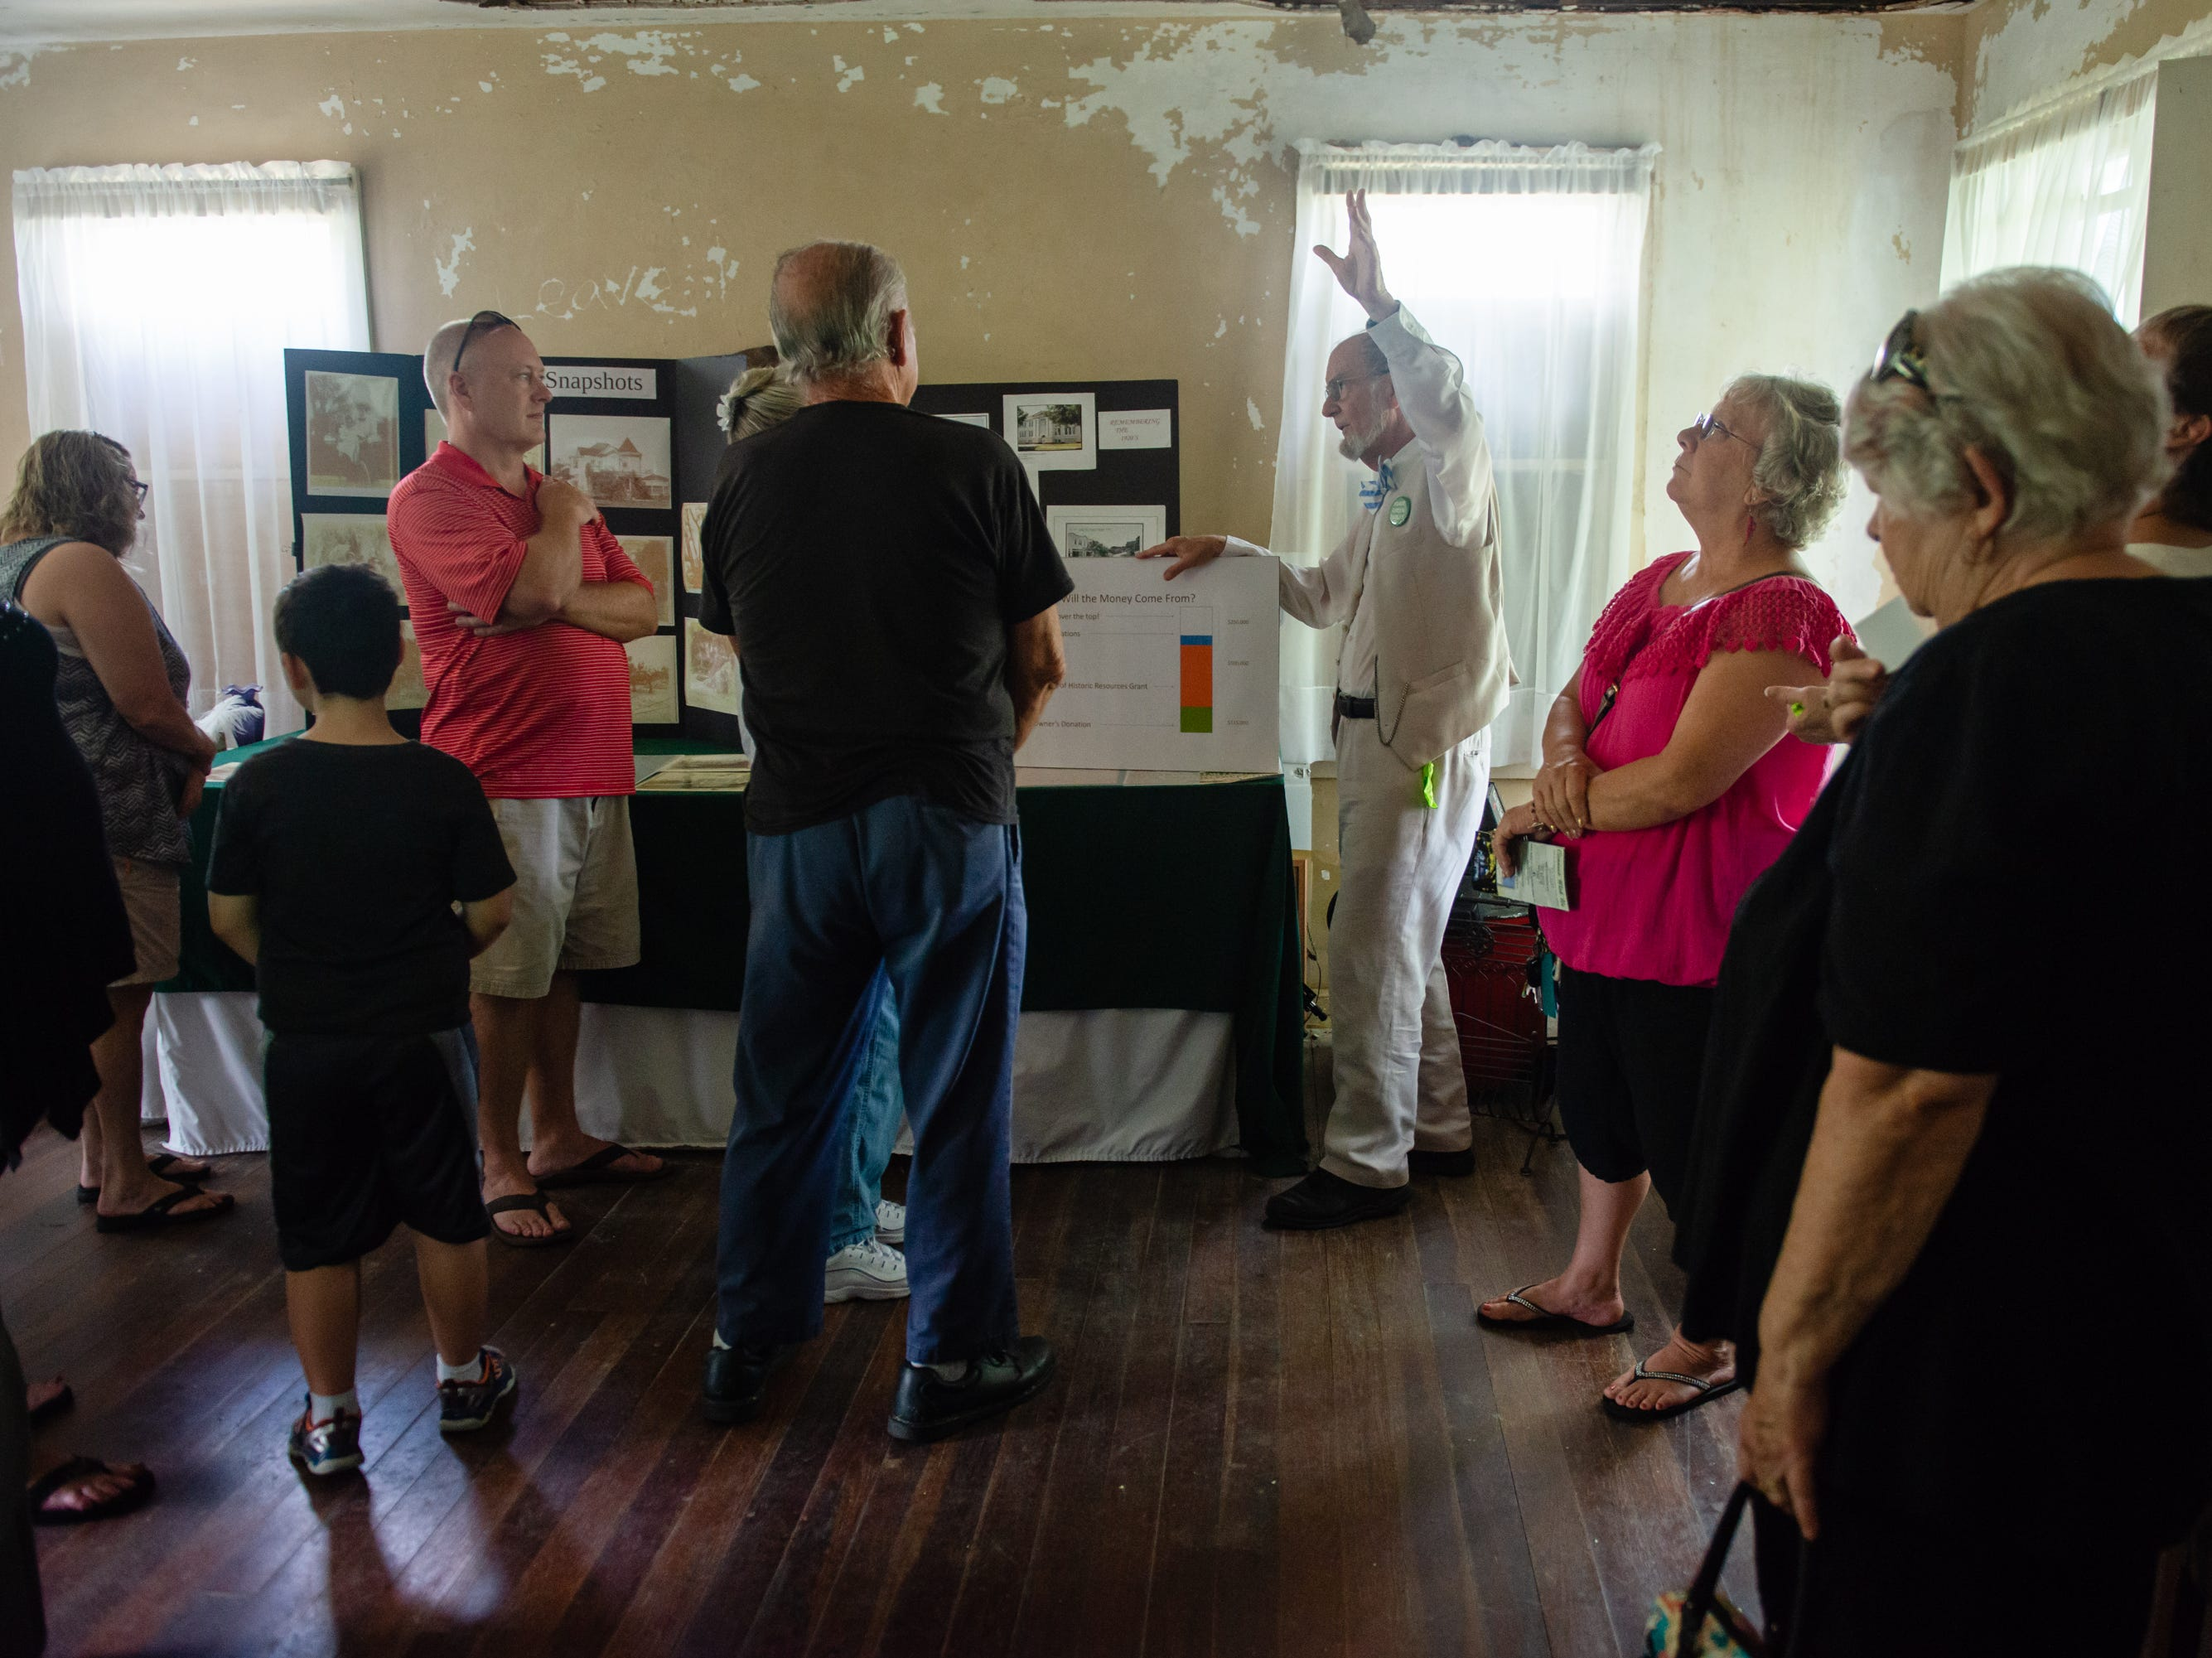 John Daly, president of Green Gables at Historic Riverview Village, Inc., talks to visitors at the Christmas in July event, which raised money to restore the Green Gables Victorian house in Melbourne.